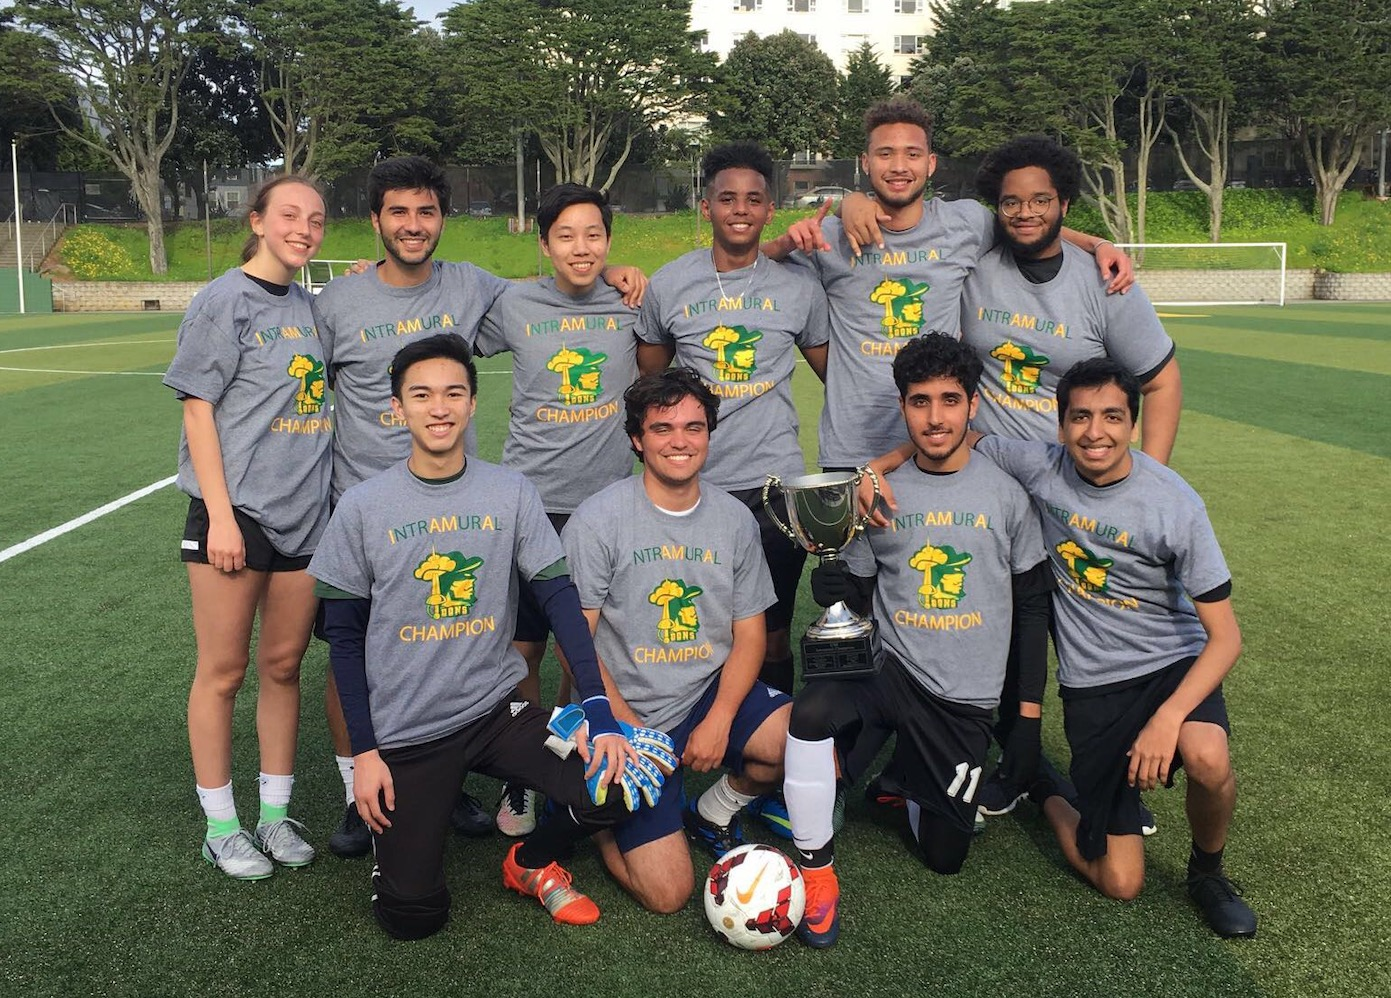 2019 Spring IM Champ Outdoor Soccer Champions Black Panter 2.0 (1)